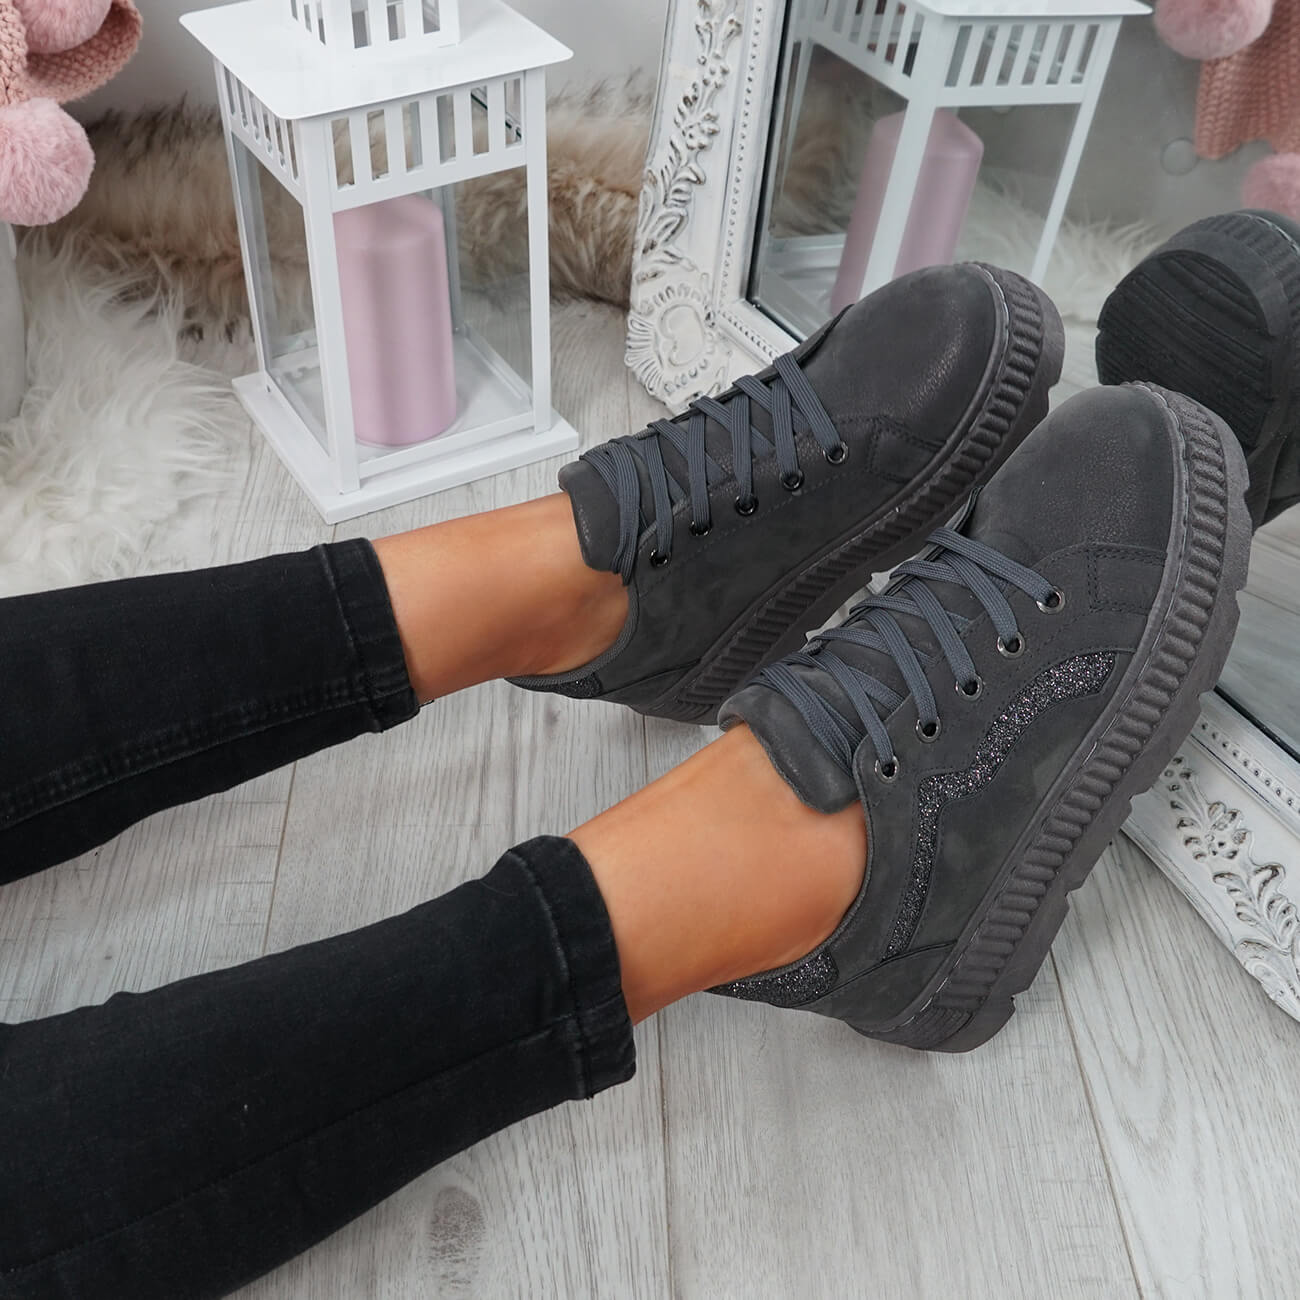 WOMENS-LADIES-LACE-UP-PLATFORM-TRAINERS-PLIMSOLL-SKATE-SNEAKERS-SHOES-SIZE thumbnail 18